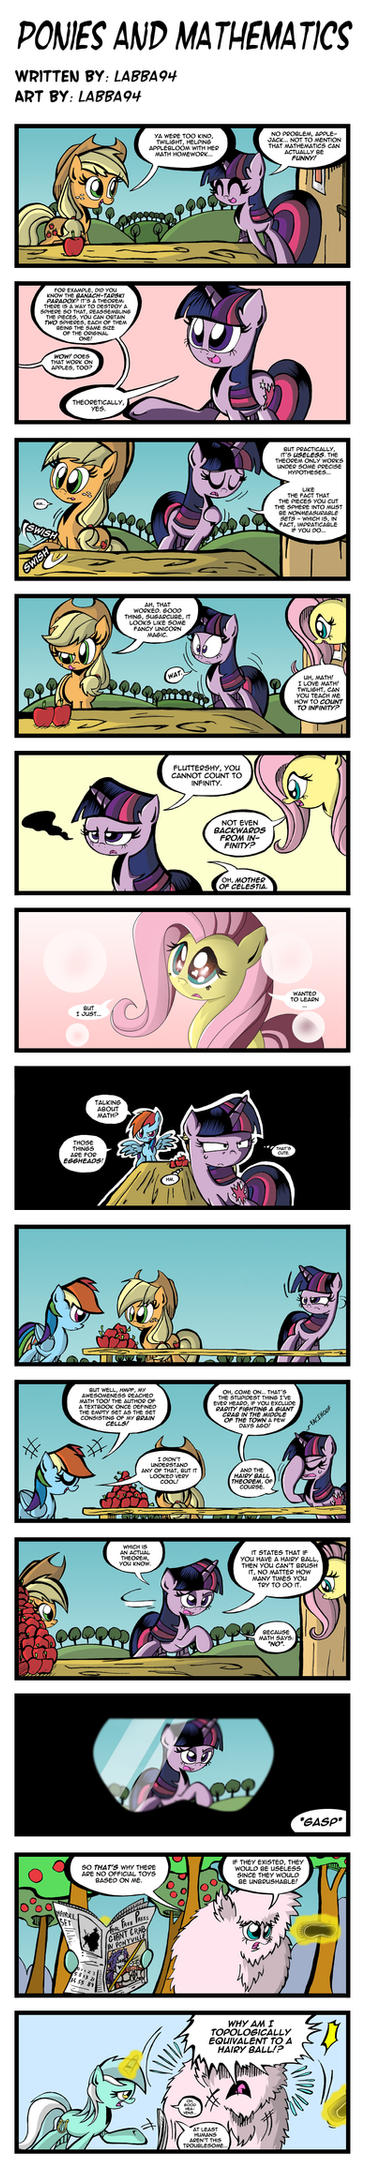 Ponies and Mathematics by labba94